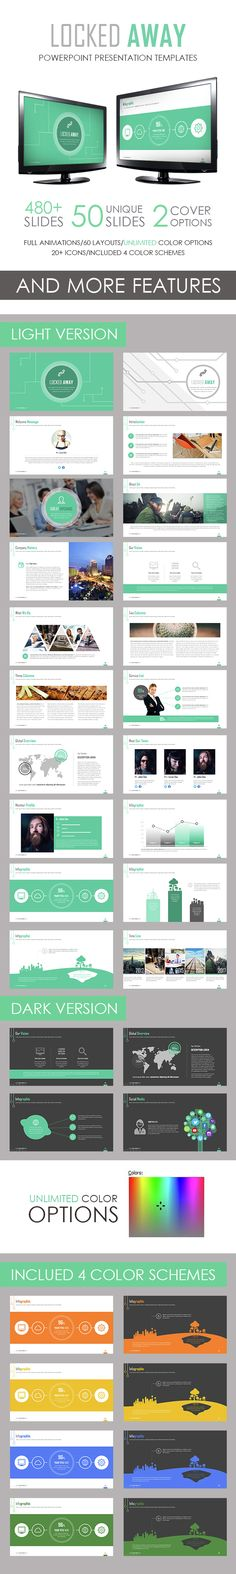 D Printing Powerpoint Templates  D Printing D And